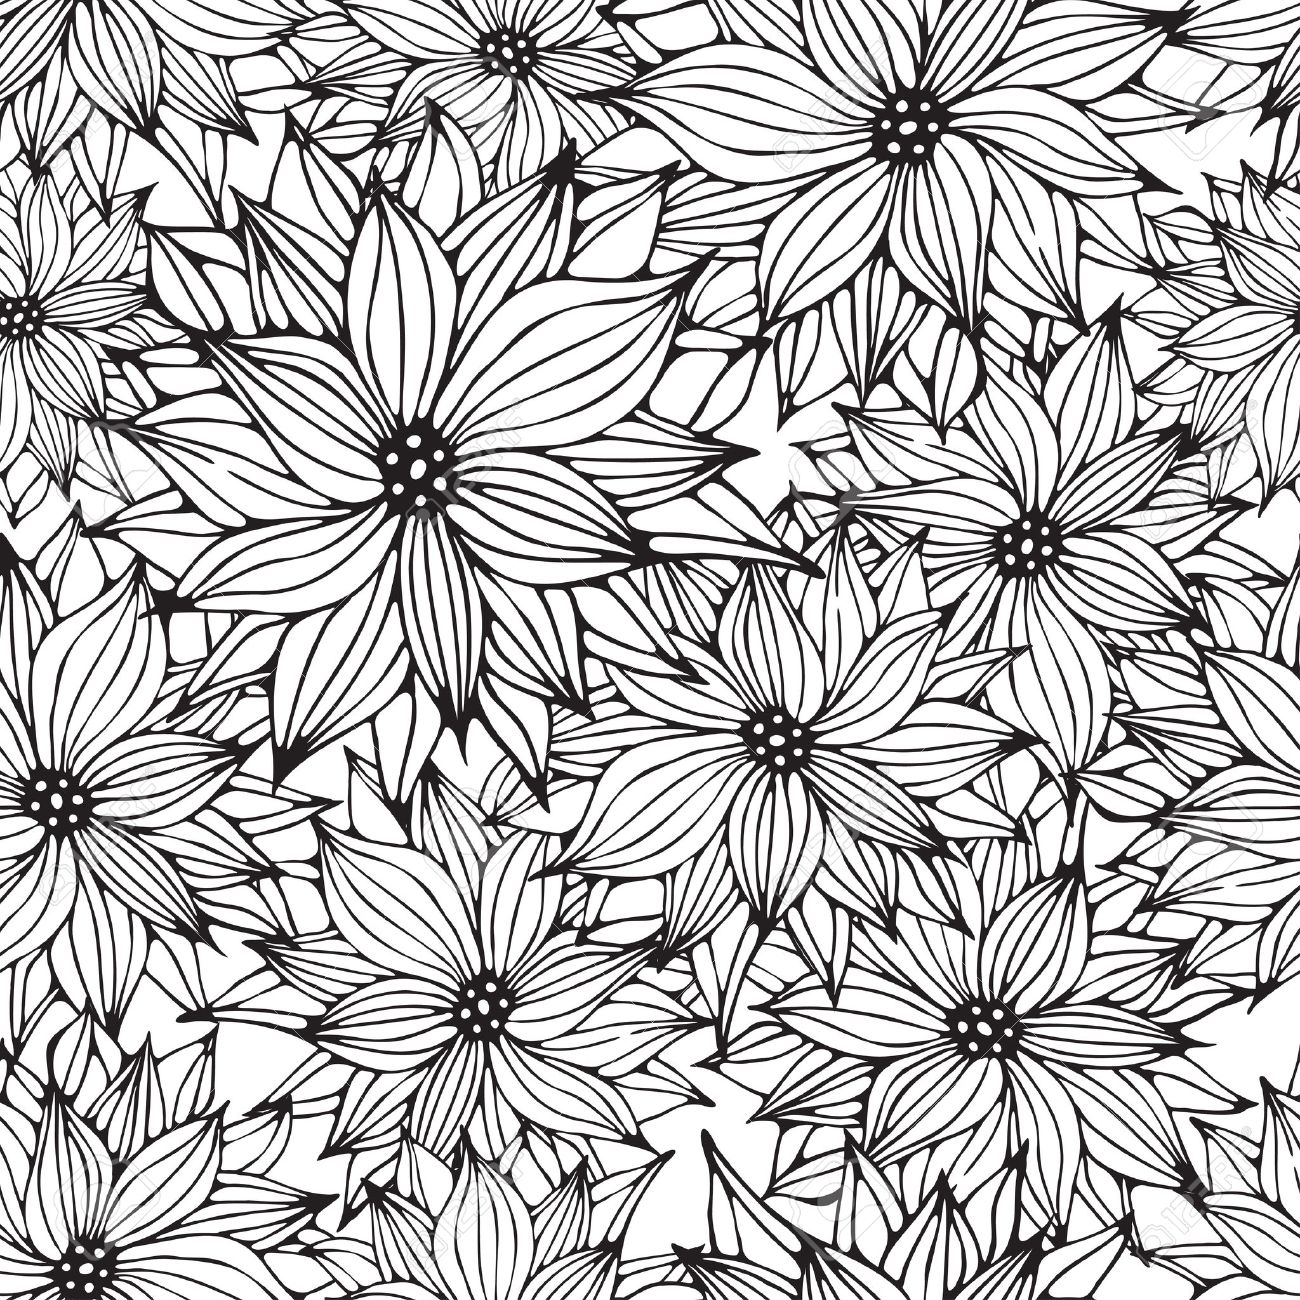 Flower drawing pattern at getdrawings free for personal use 1300x1300 seamless floral white black background flower hand drawn pattern mightylinksfo